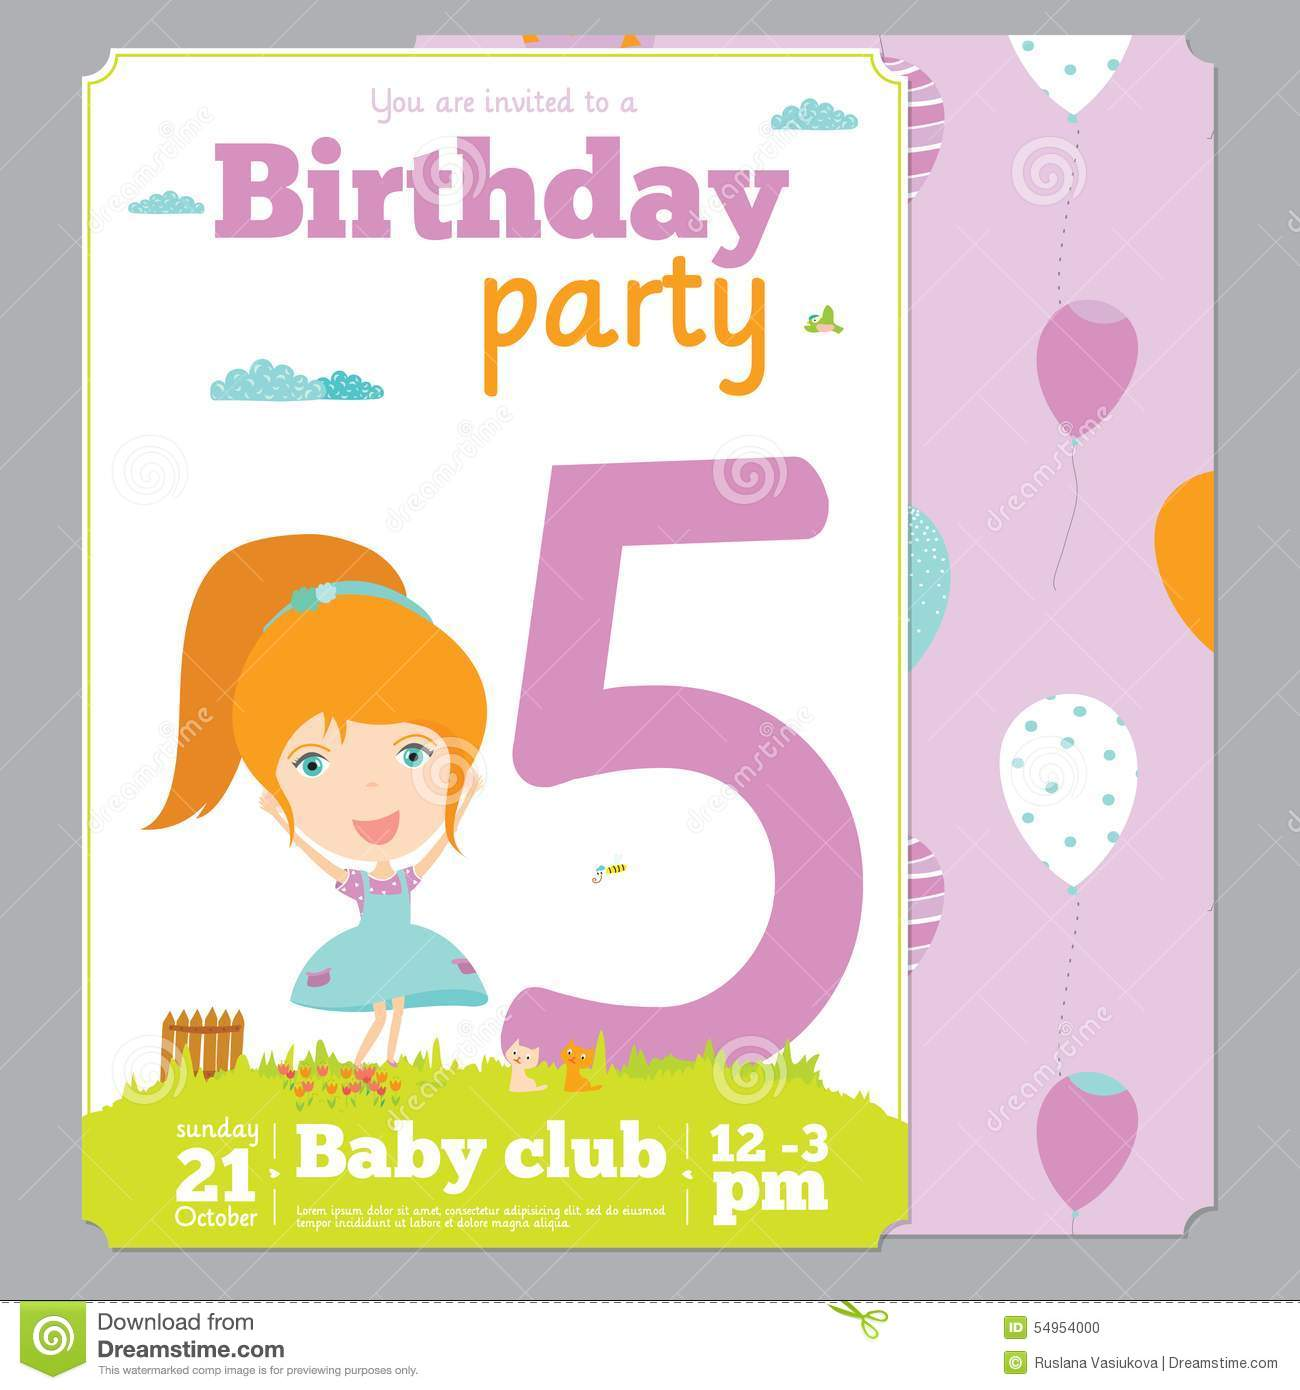 Birthday Party Invitation Card Template With Cute Stock Vector - Image ...